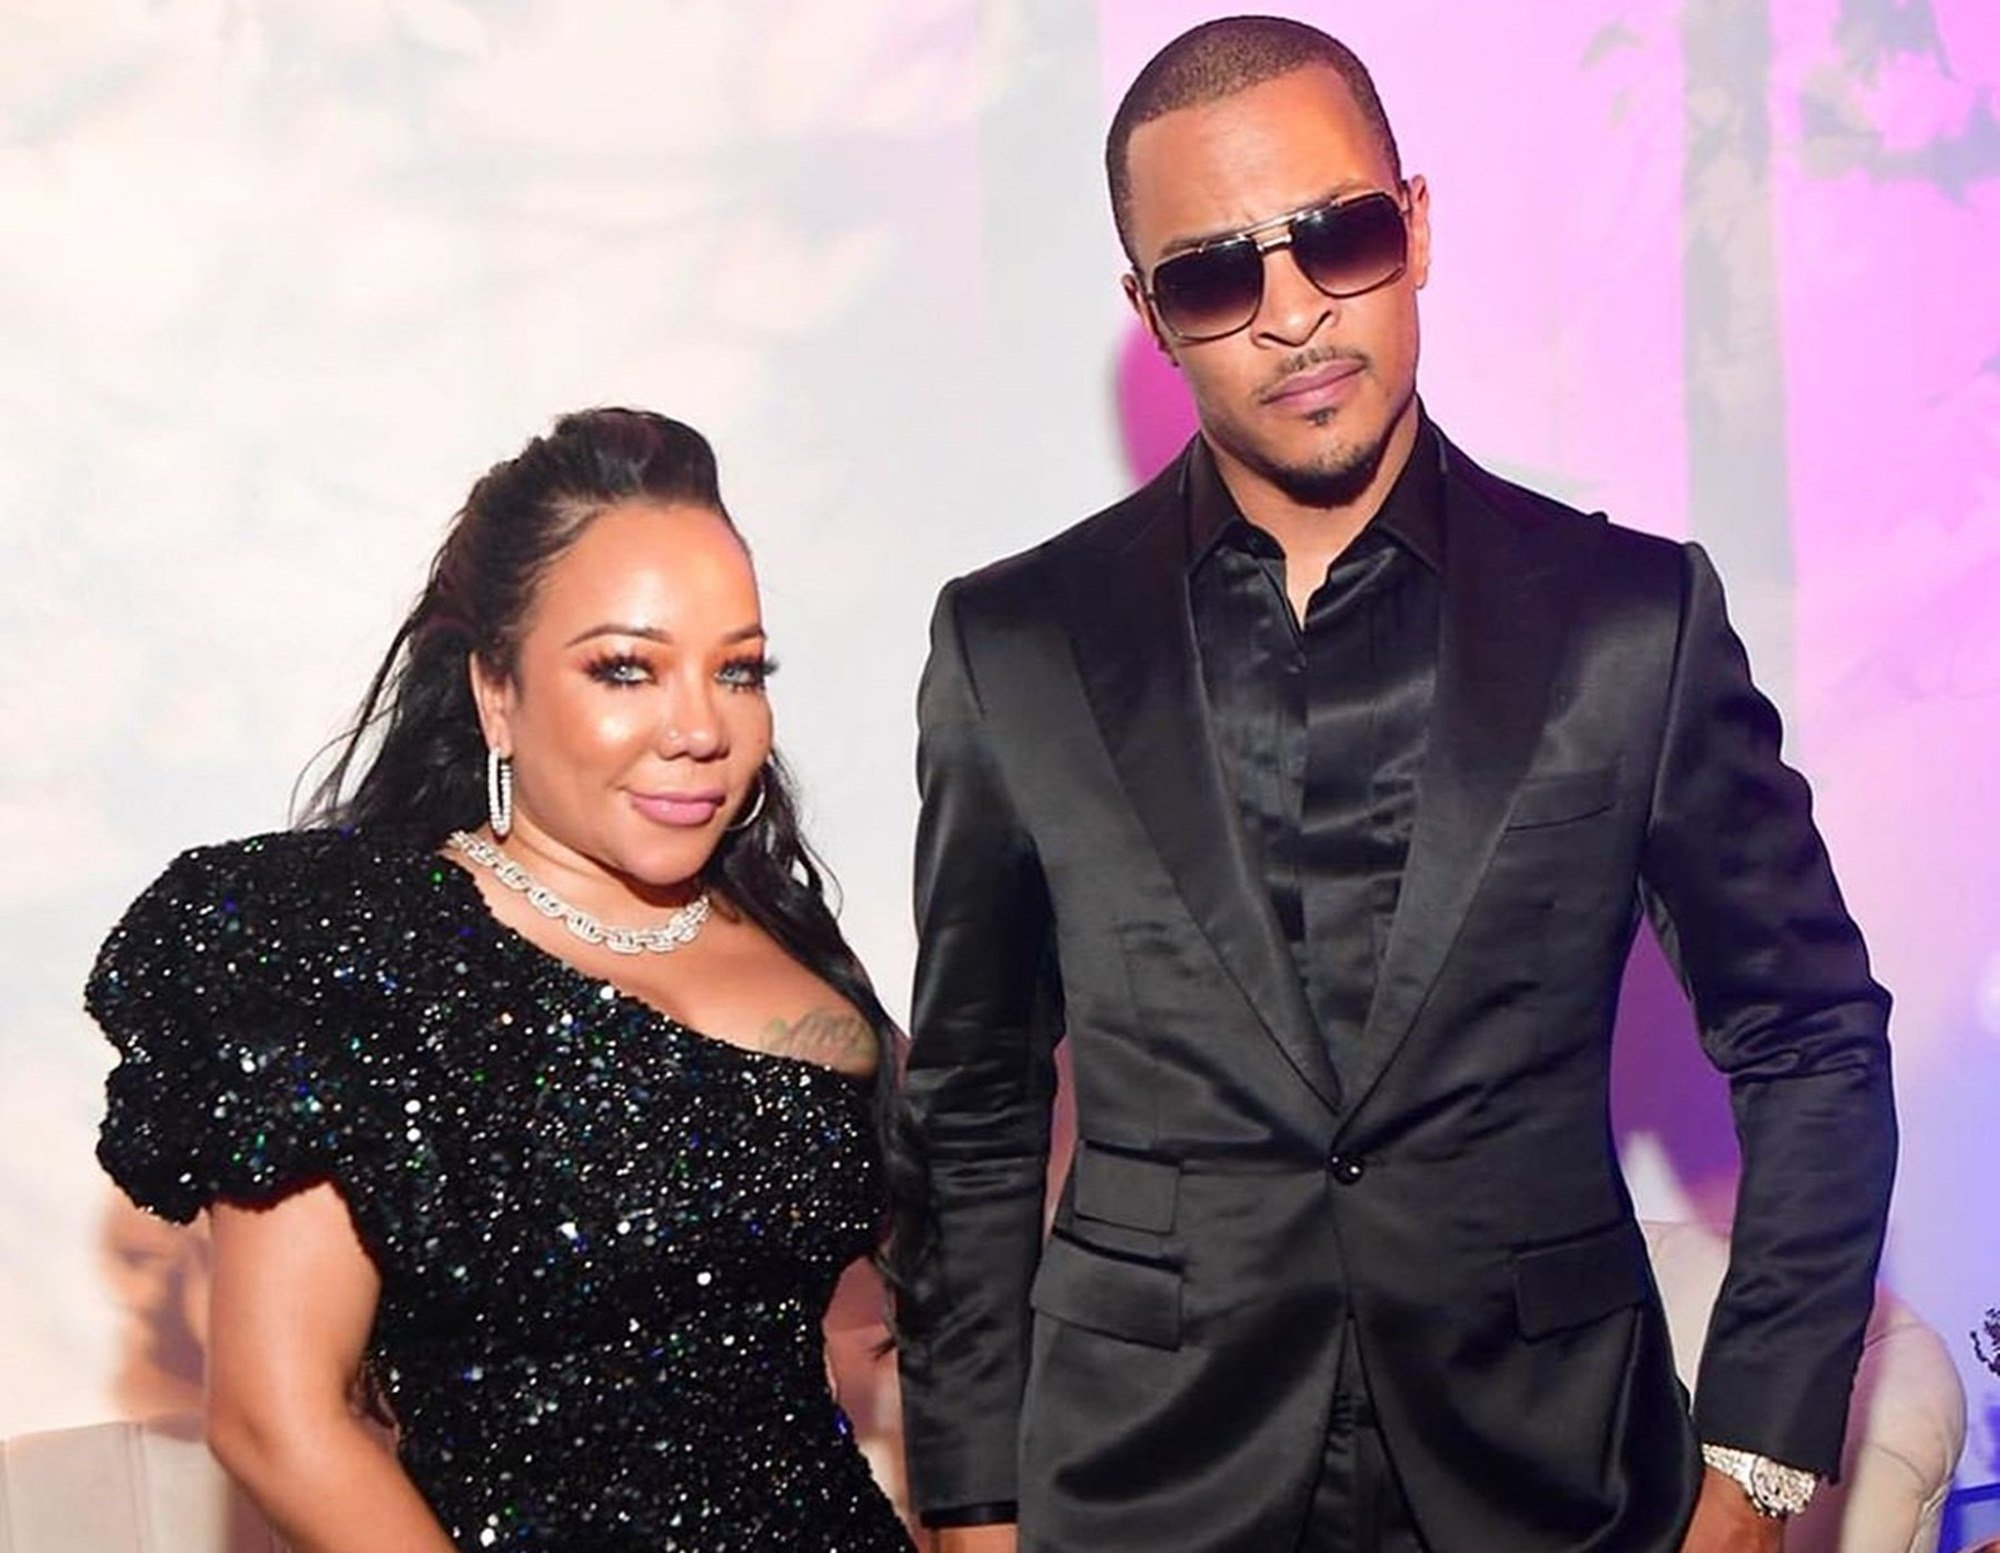 Tiny Harris And T.I. Release A Statement Following Sexual Assault Allegations